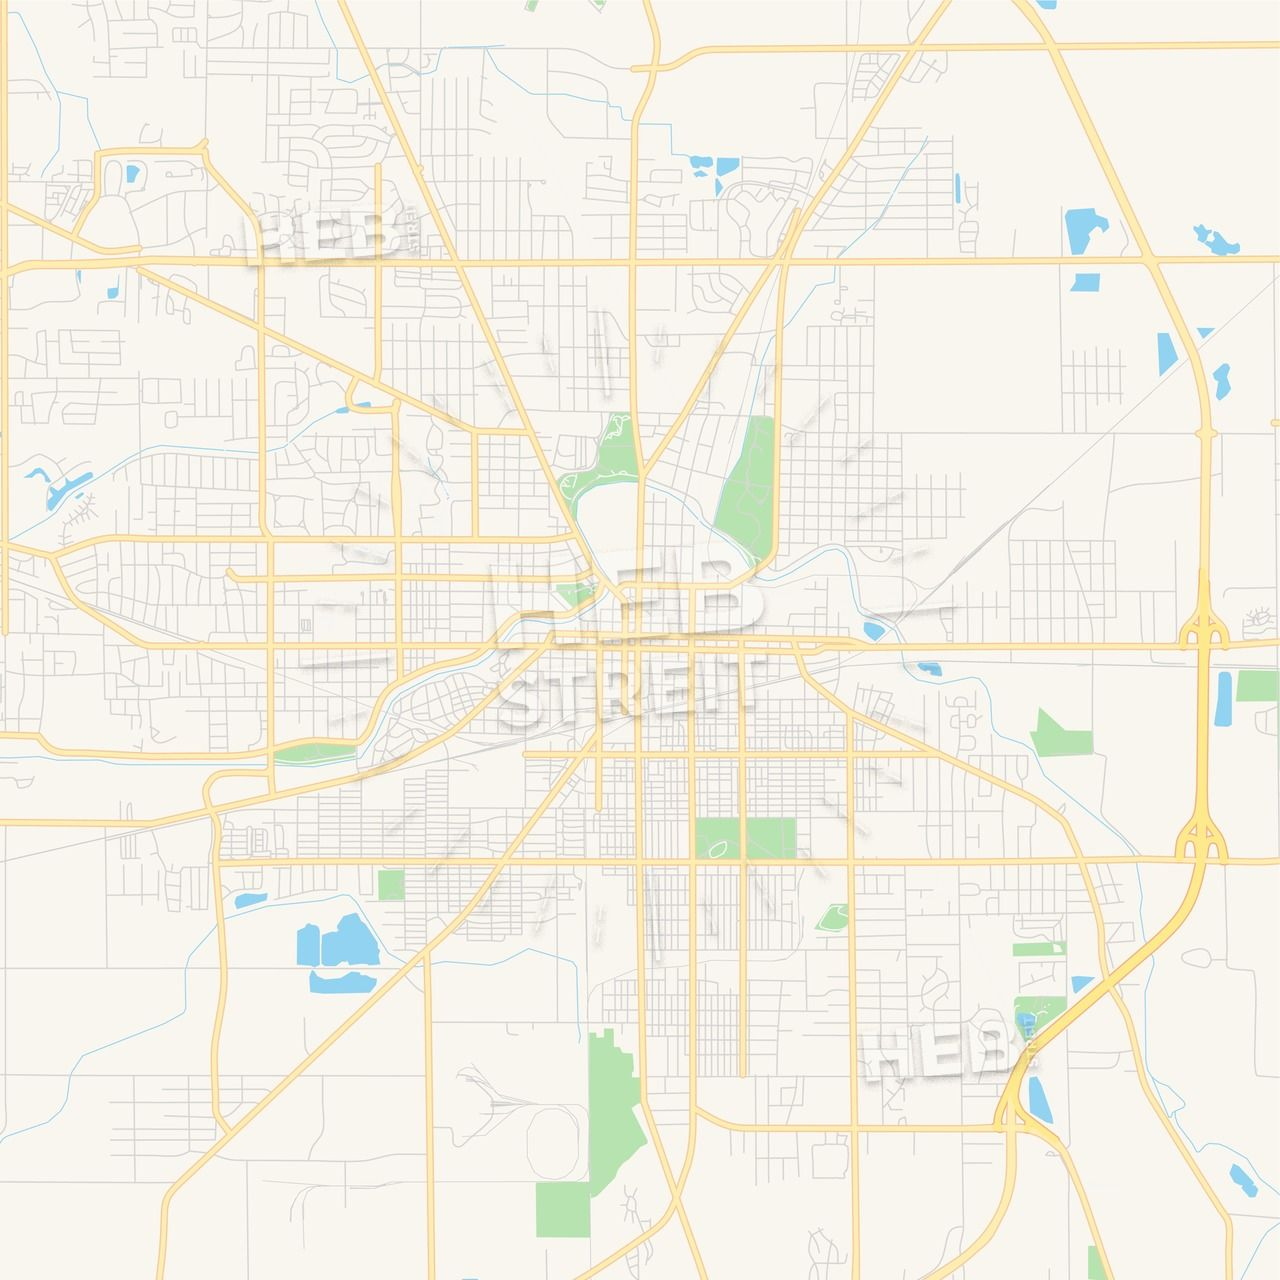 Empty vector map of Muncie, Indiana, USA | Maps Vector Downloads on three regions of indiana, usa and mexico, lakes in northern indiana, state of indiana, states around indiana, capital of indiana, major products in indiana, usa maps with cities only, illinois state line indiana, lost towns in indiana, evansville indiana, indianapolis indiana, location of us in indiana, sweet home indiana, america indiana, maps for indiana, lowest point in indiana, big cities in indiana, google maps indiana, sports in indiana,